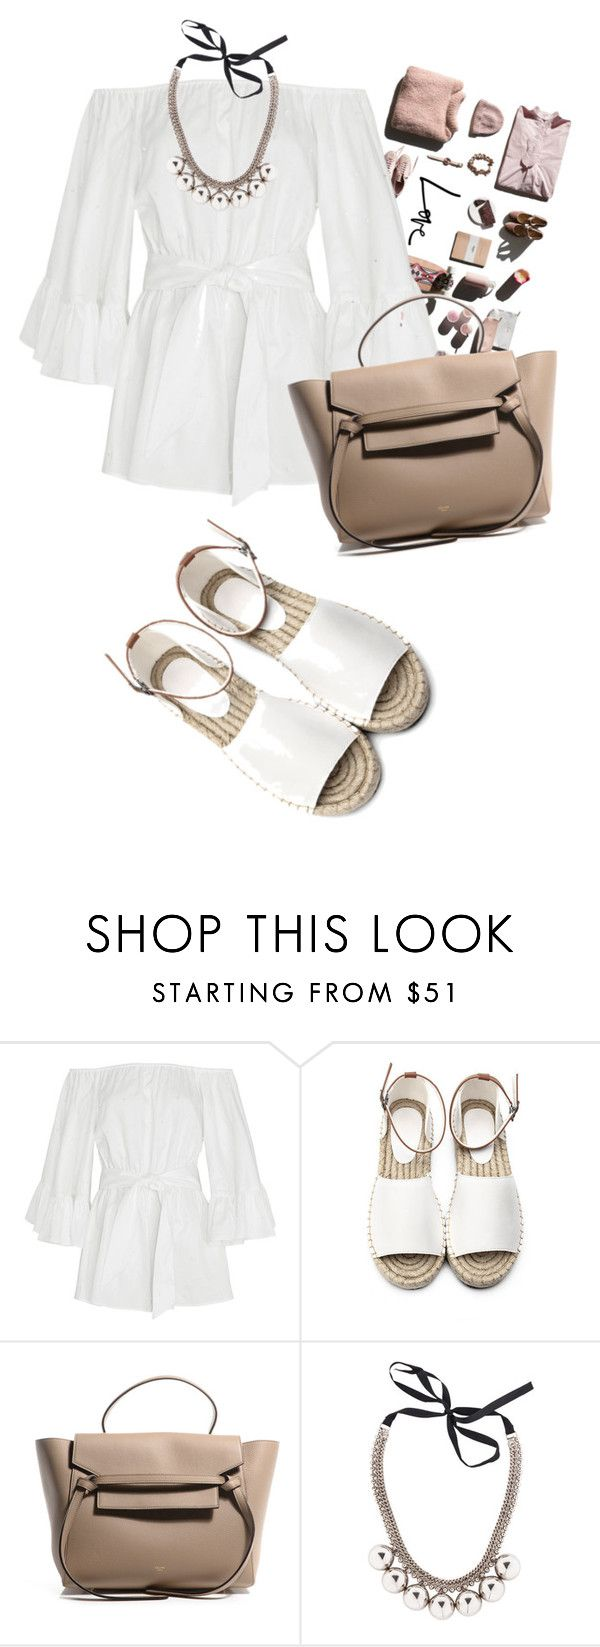 """lovelyhard"" by namelif ❤ liked on Polyvore featuring Garance Doré, Cameo, Marni, DayToNight and romper"